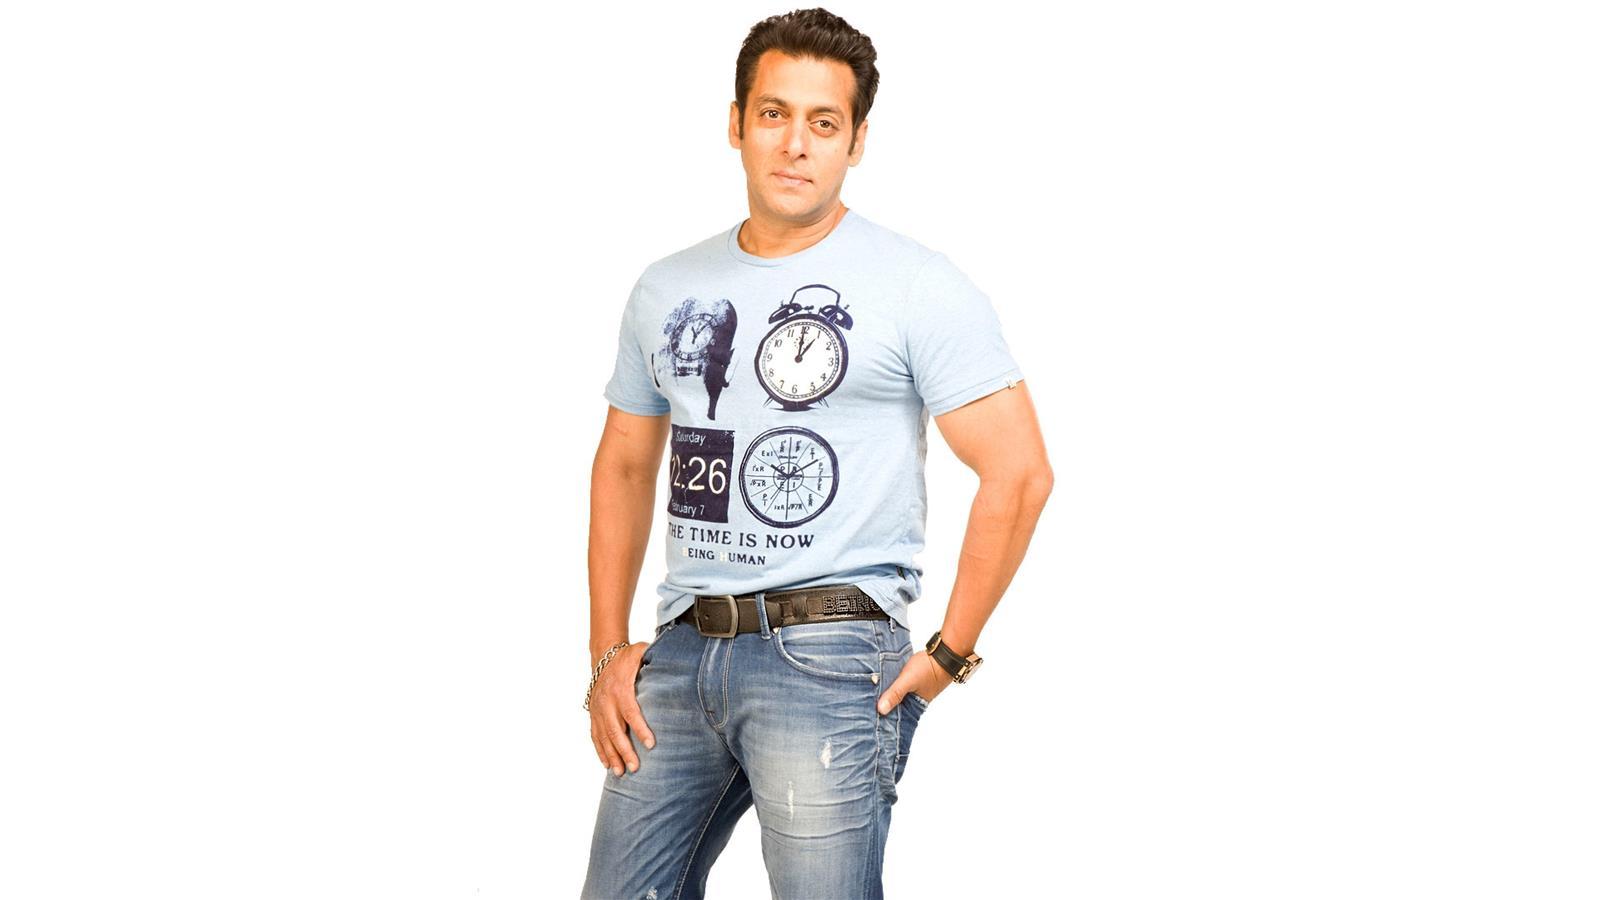 1600x900 4K Image of Salman Khan